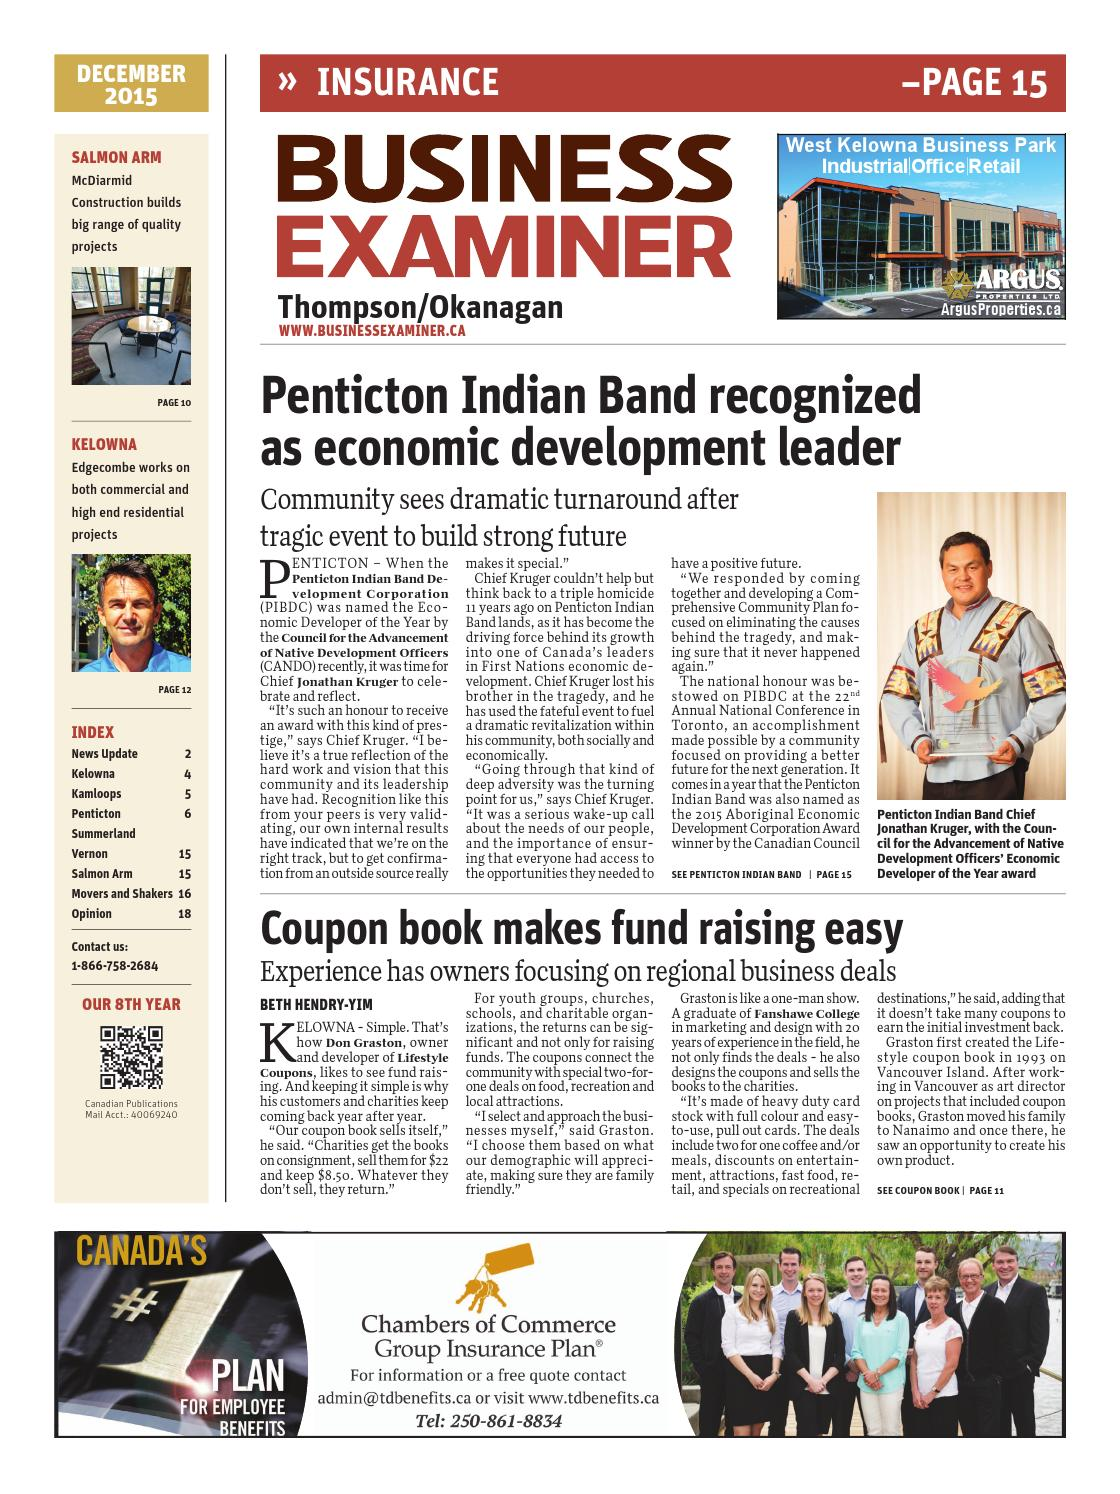 Business Examiner Thompson Okanagan December 2015 By